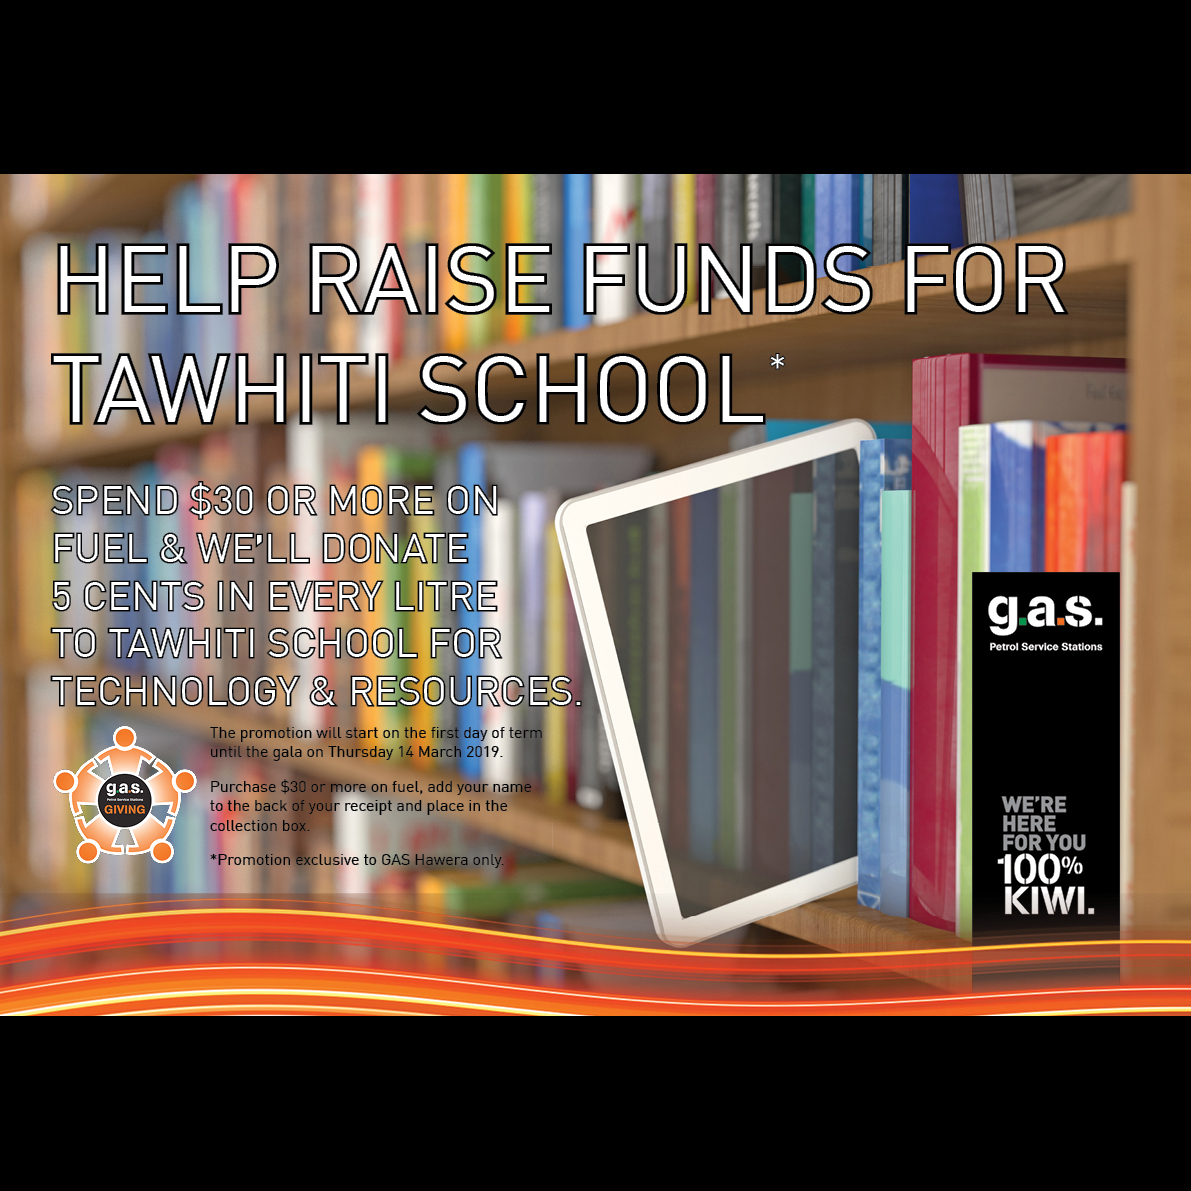 GAS Hawera - Raising fund to support Tawhiti School for technology and resources.